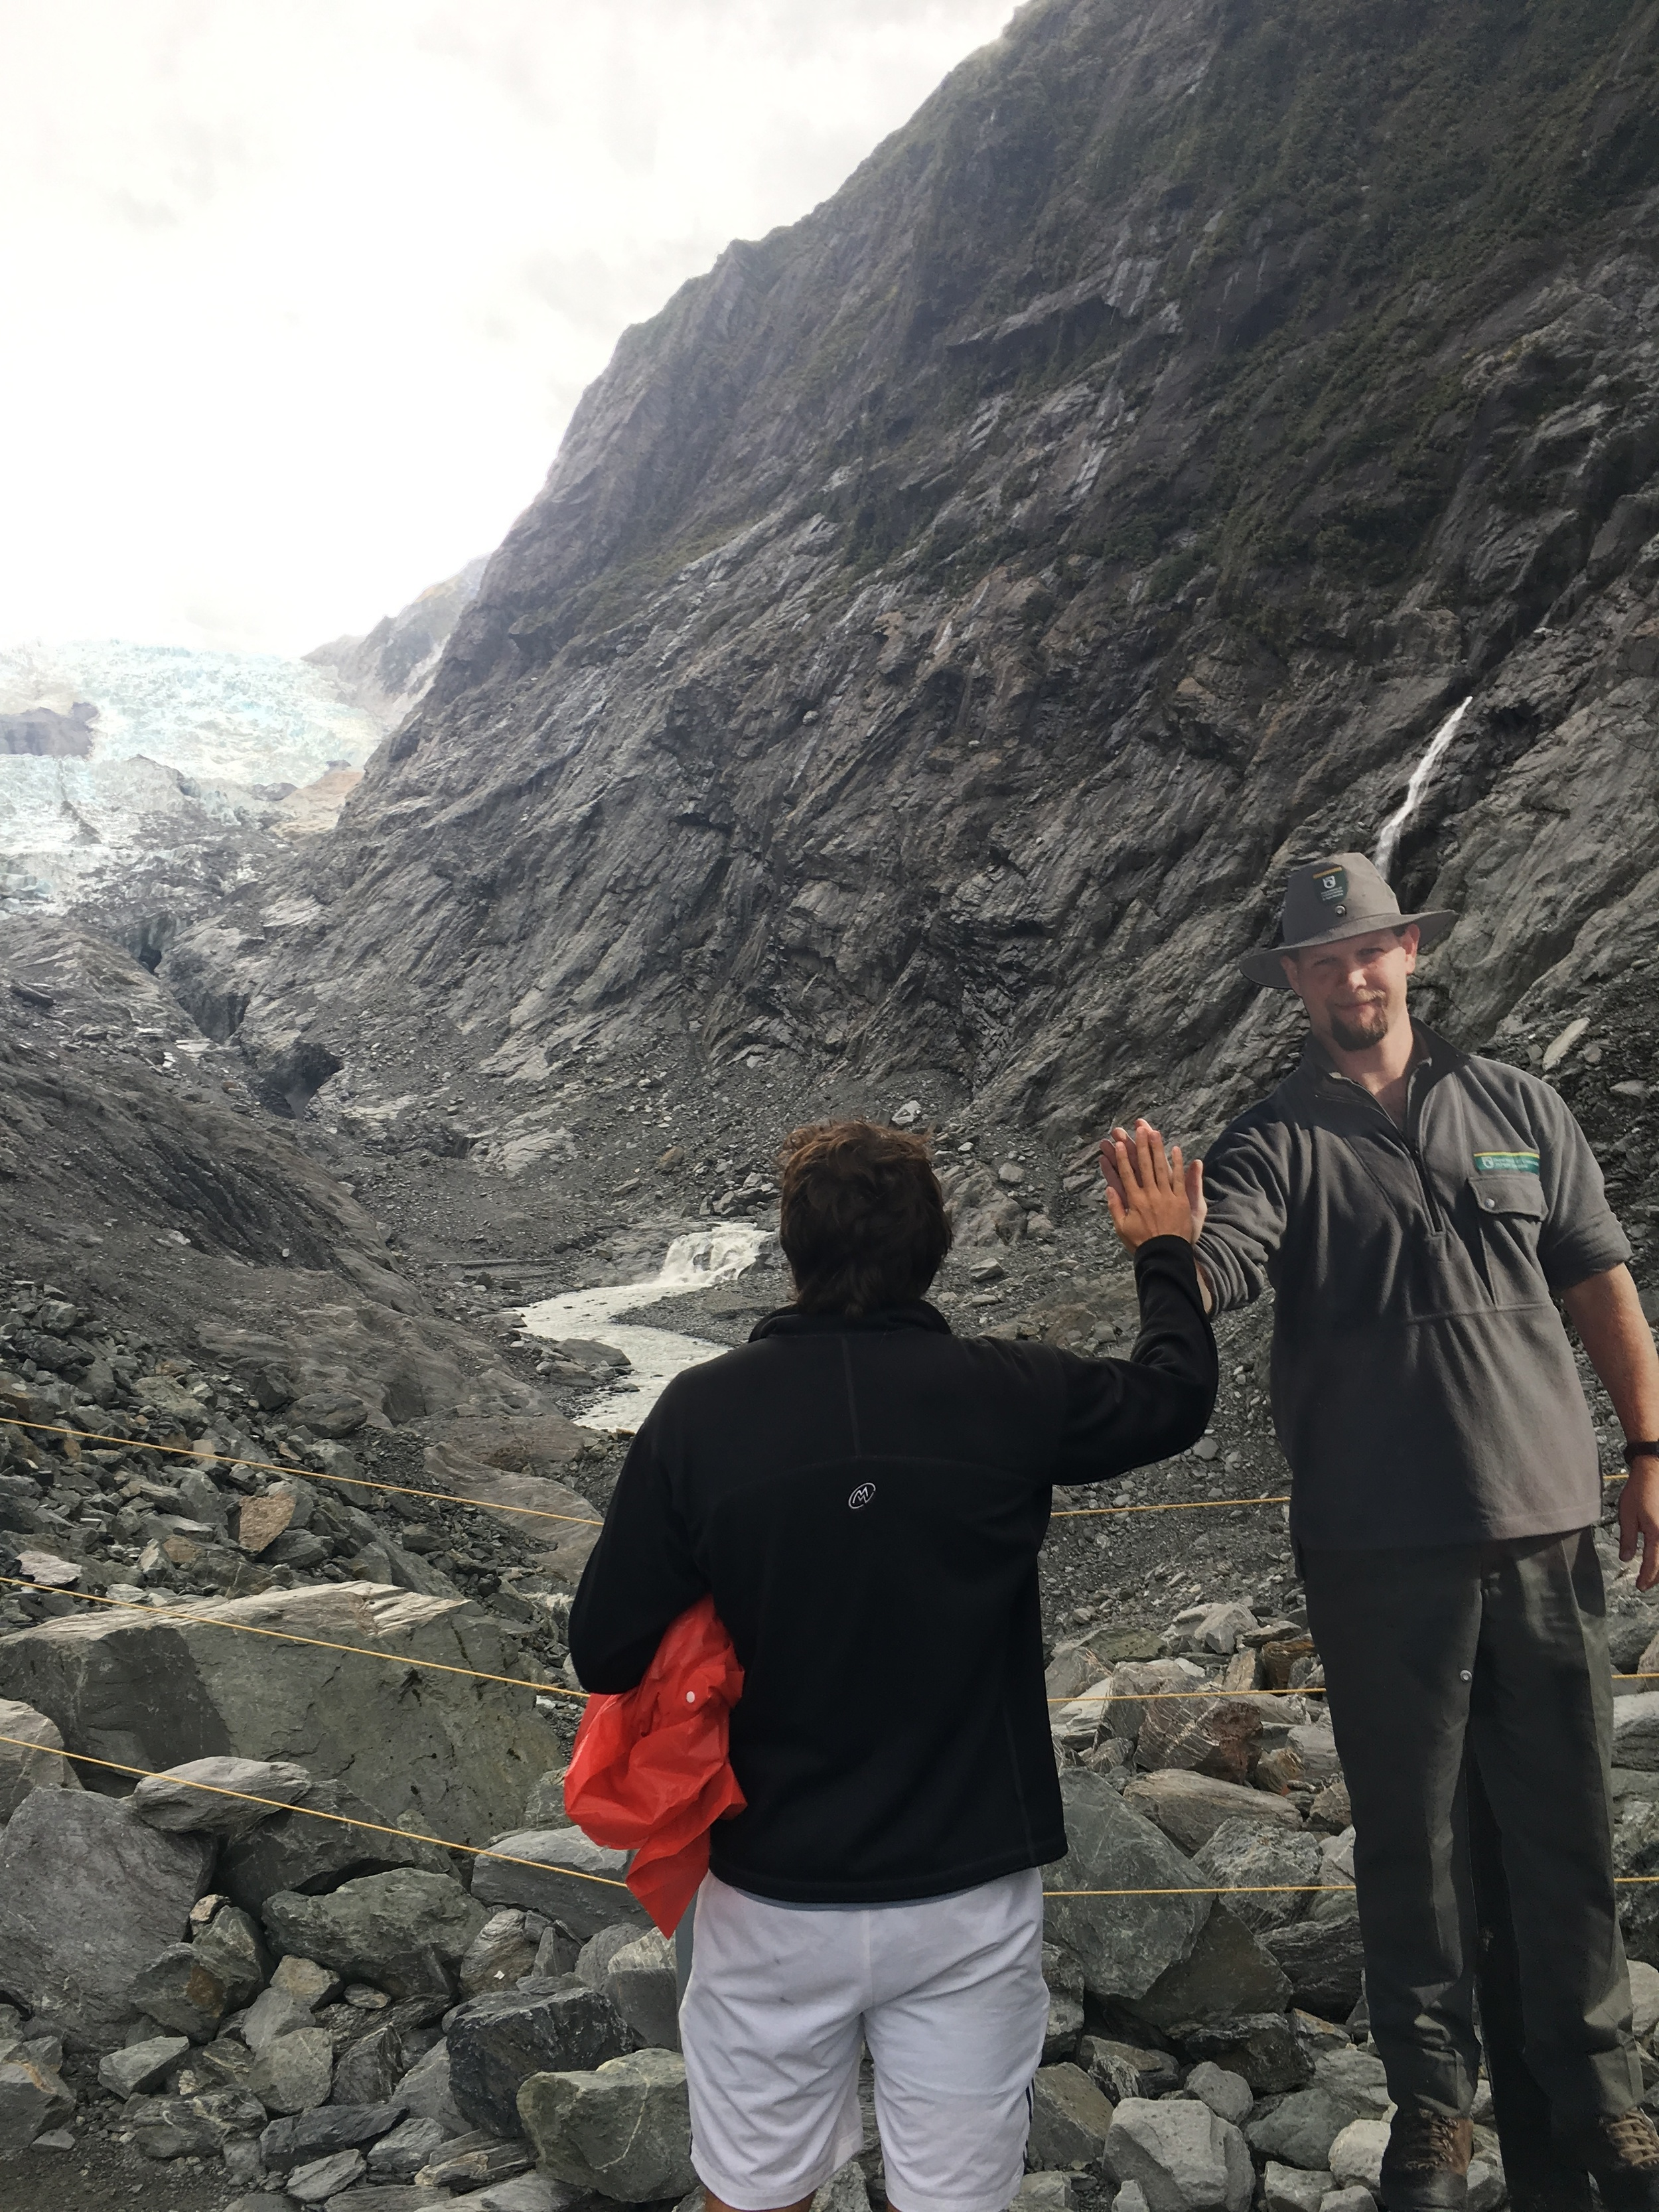 Faux ranger high five at Franz Josef Glacier